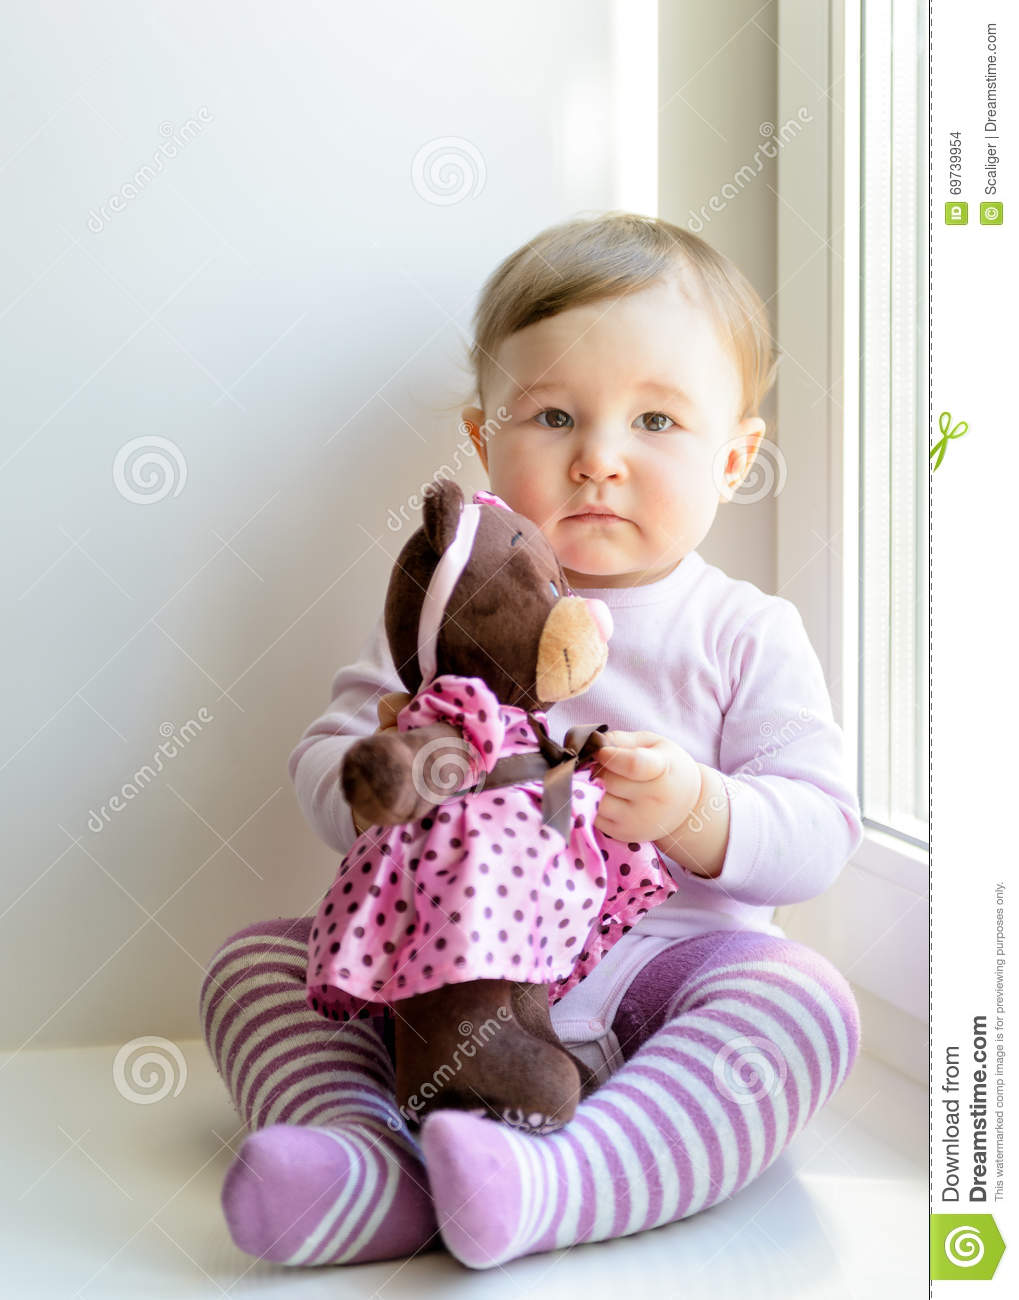 sad nice baby girl with toy bear stock photo - image of child